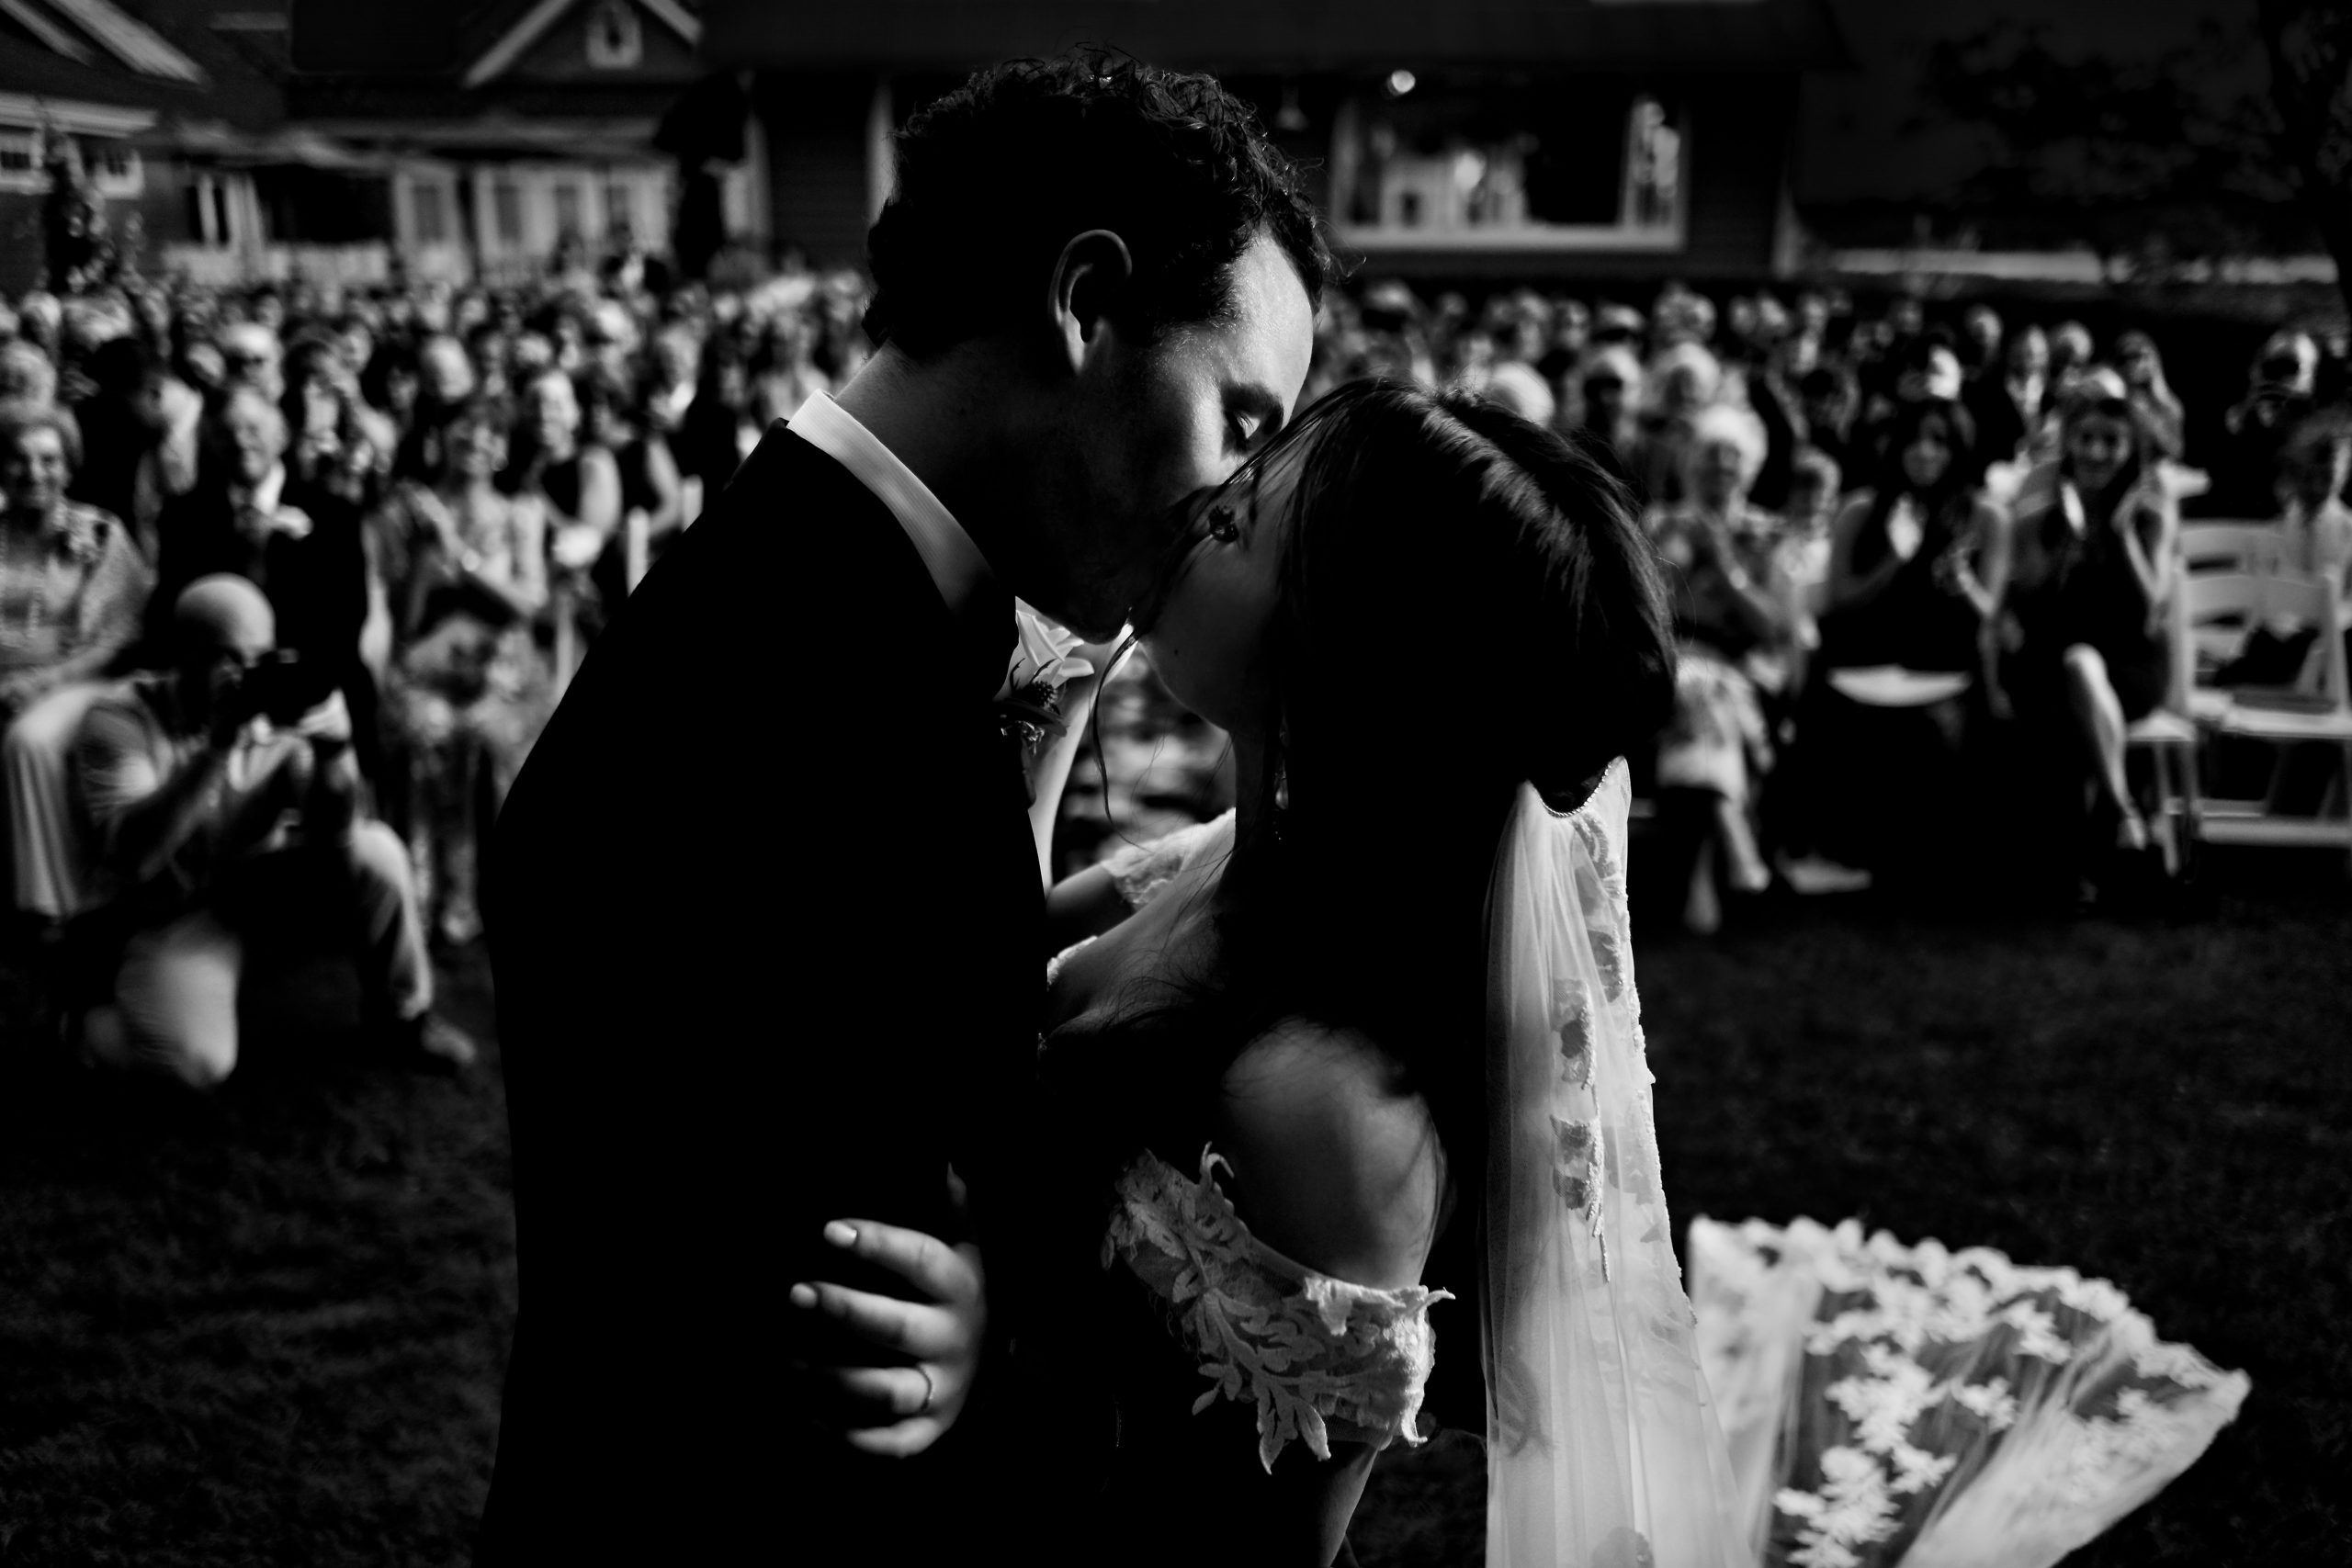 Weddings guests clap as the bride and groom kiss for the first time as husband and wife